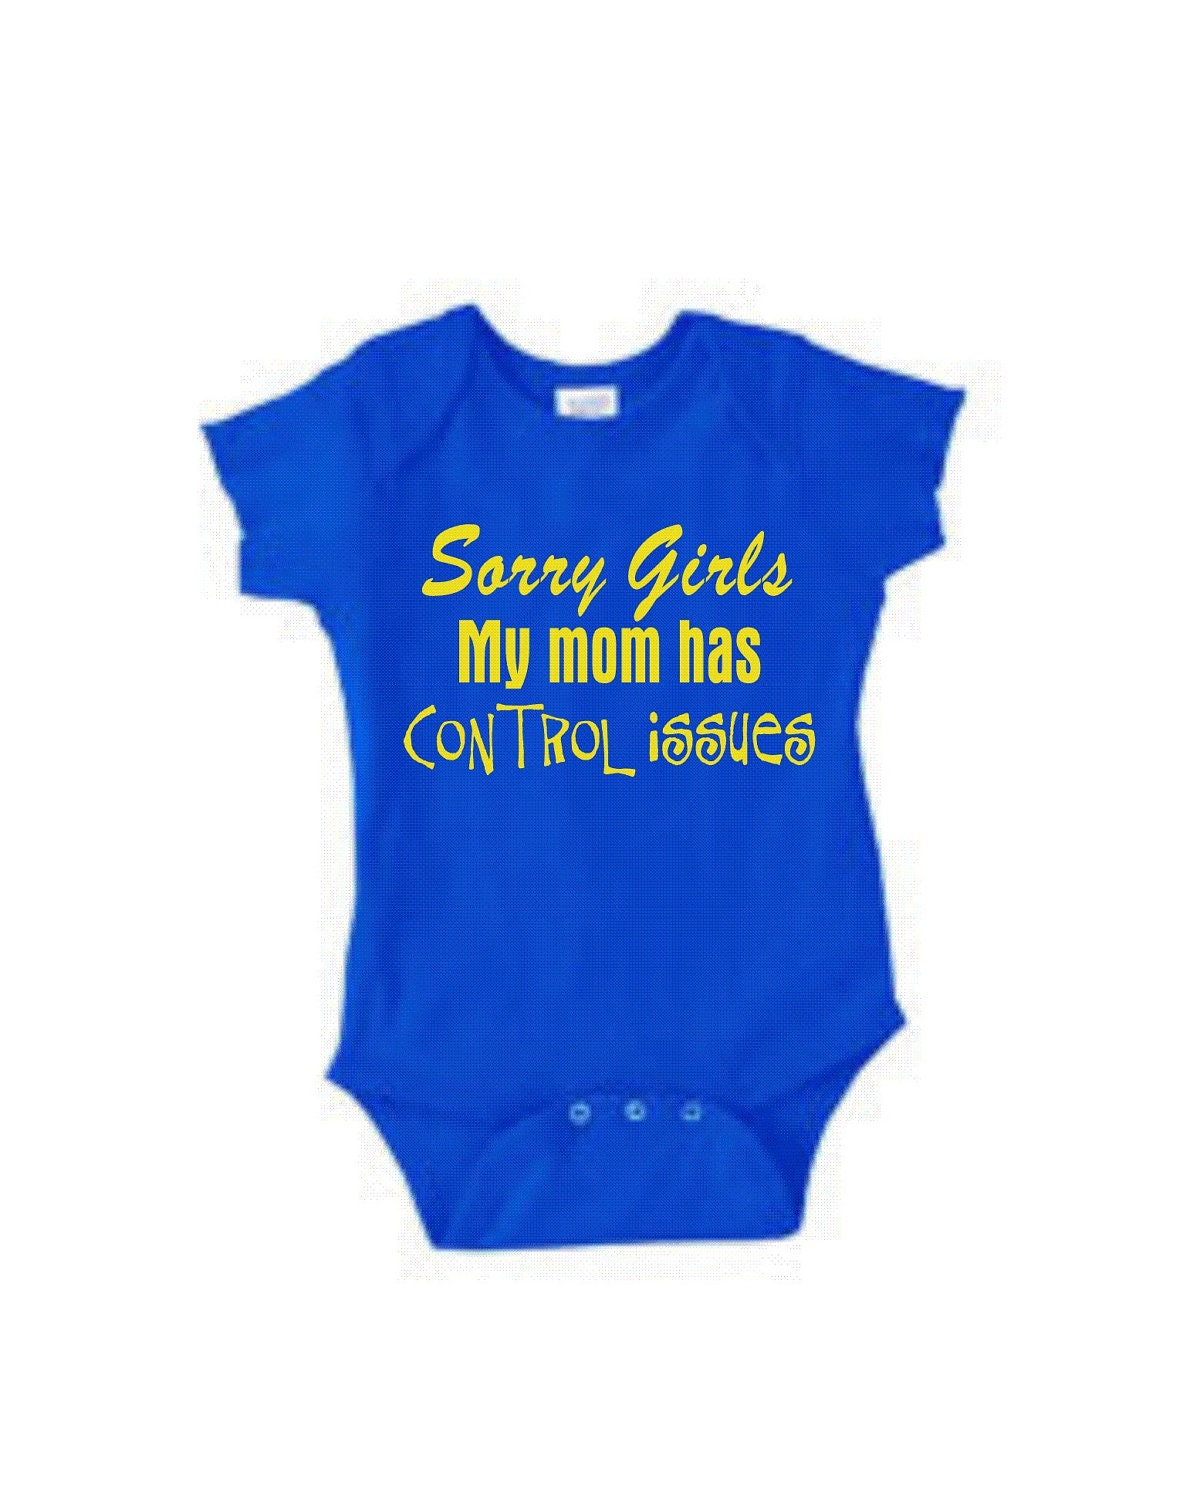 Sorry Girls funny baby boy shirt